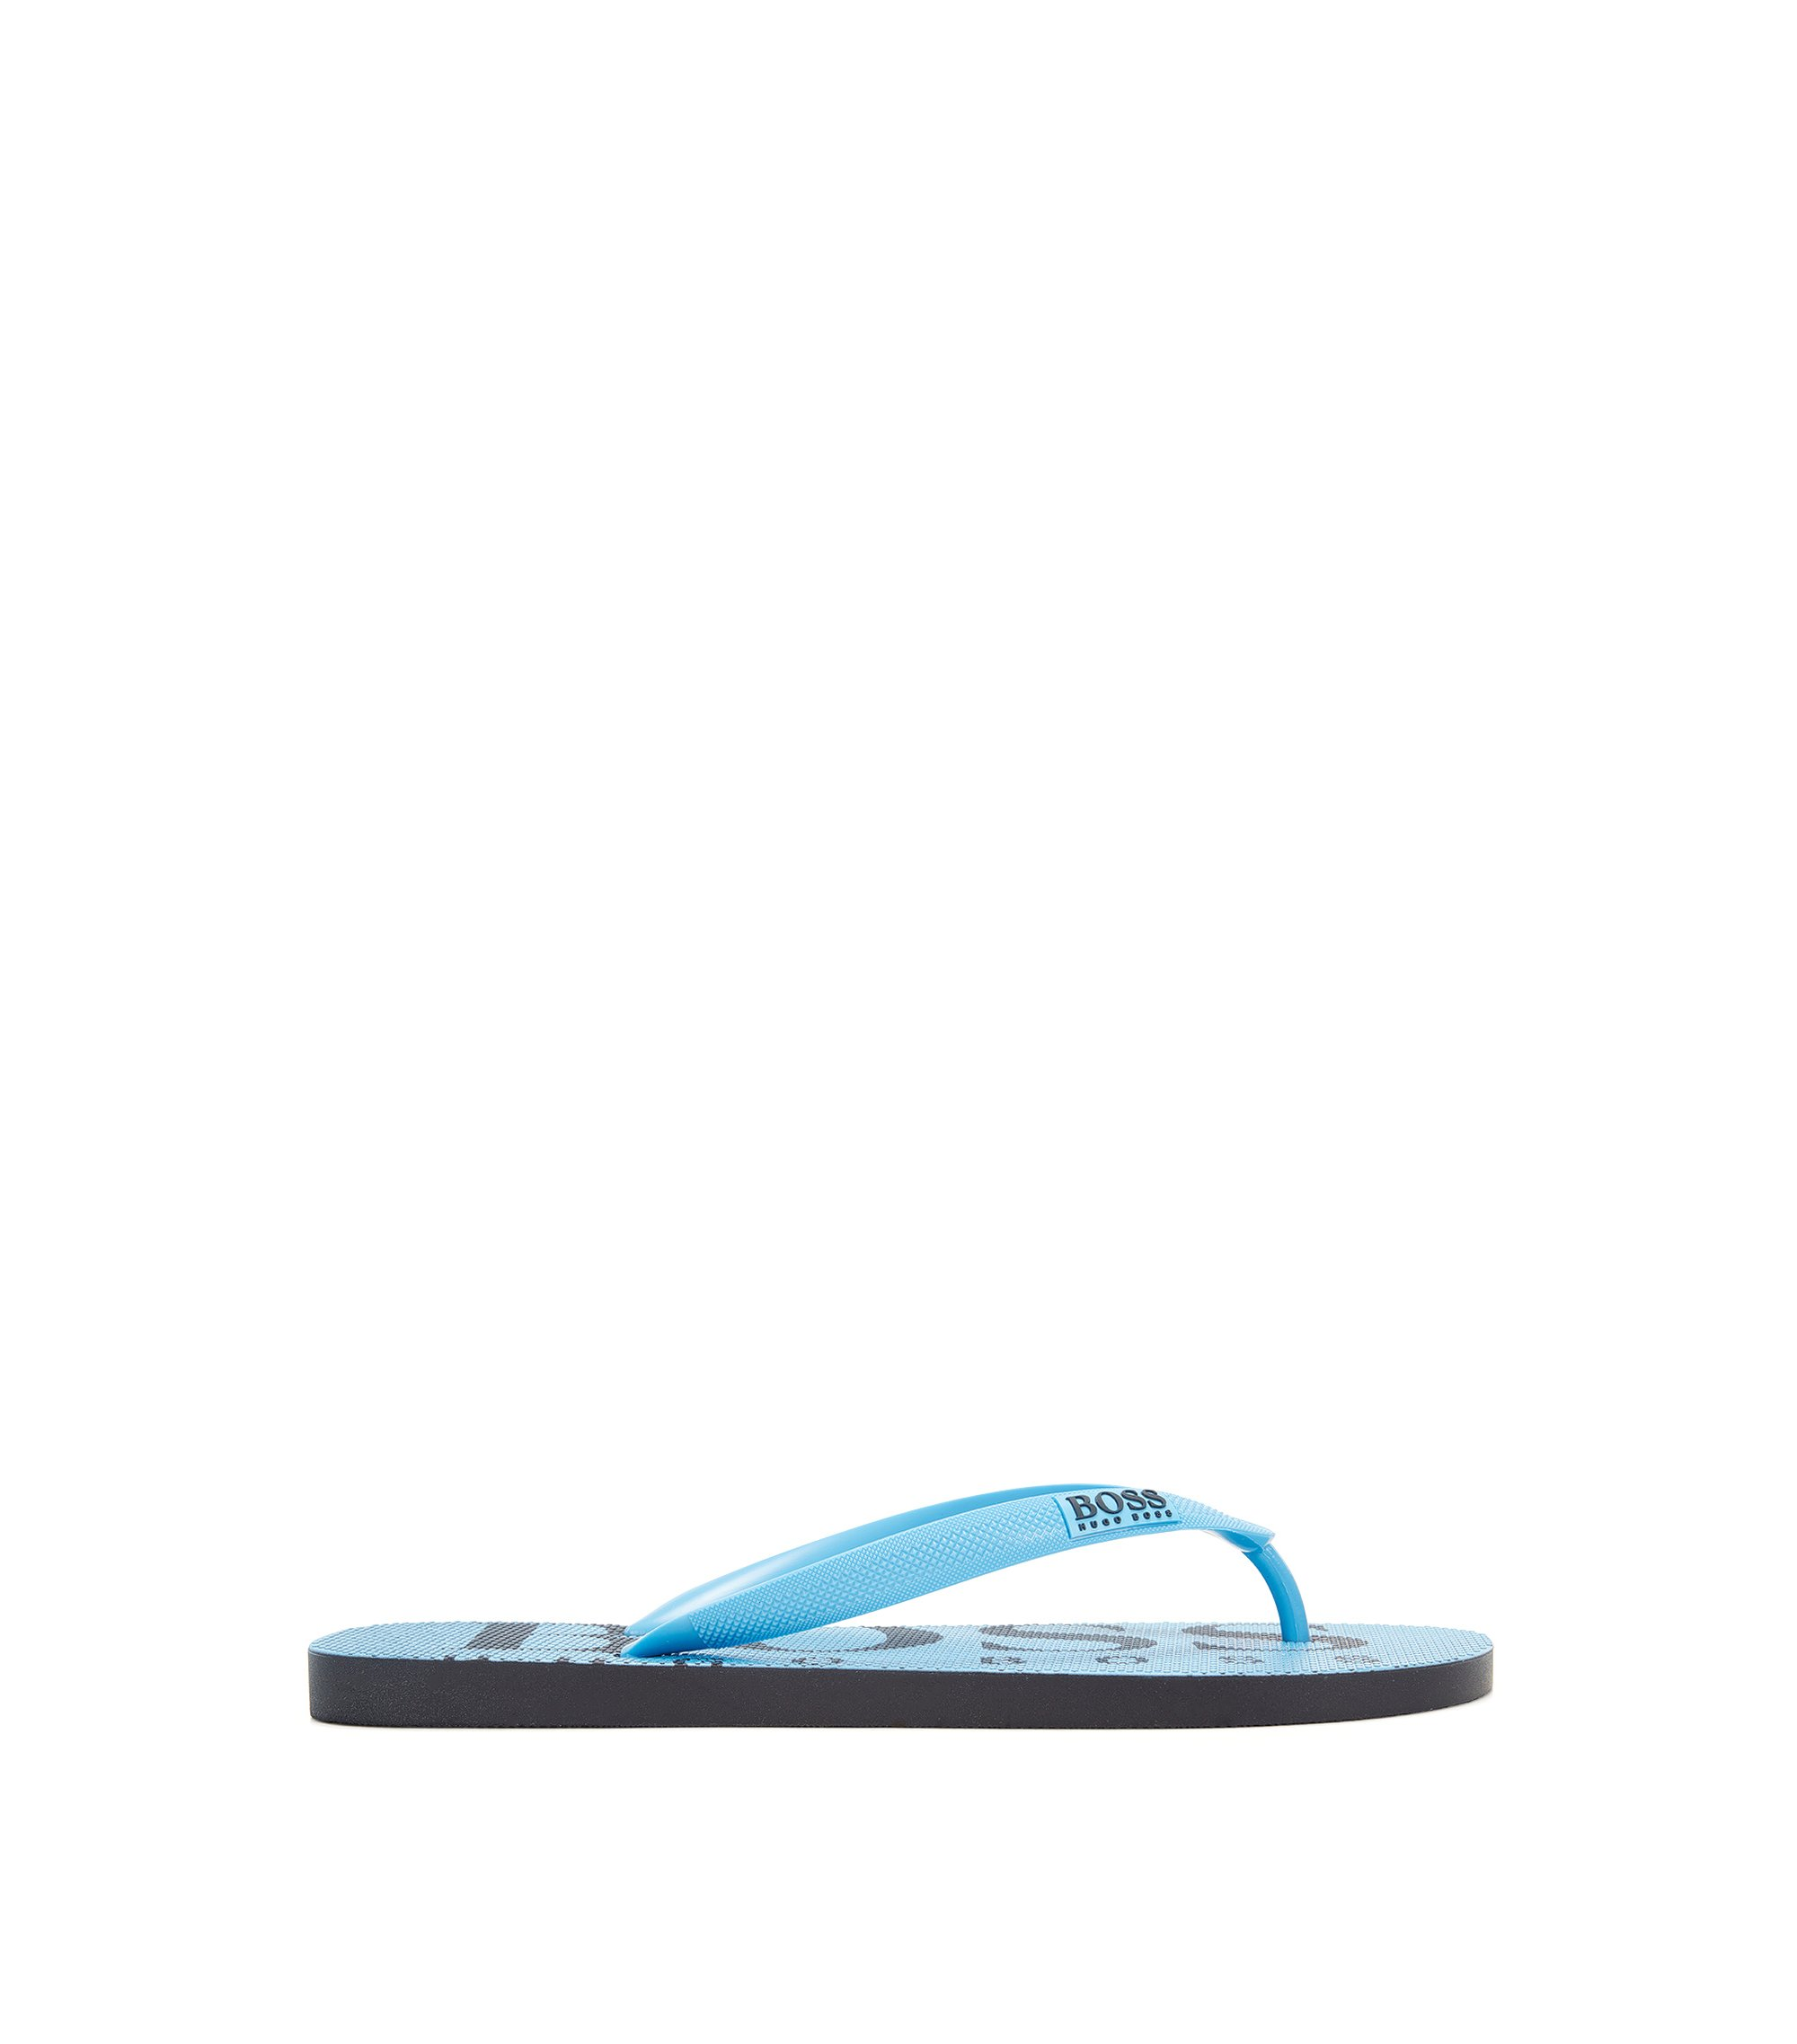 Rubber flip-flops with contrasting logo detail, Light Blue